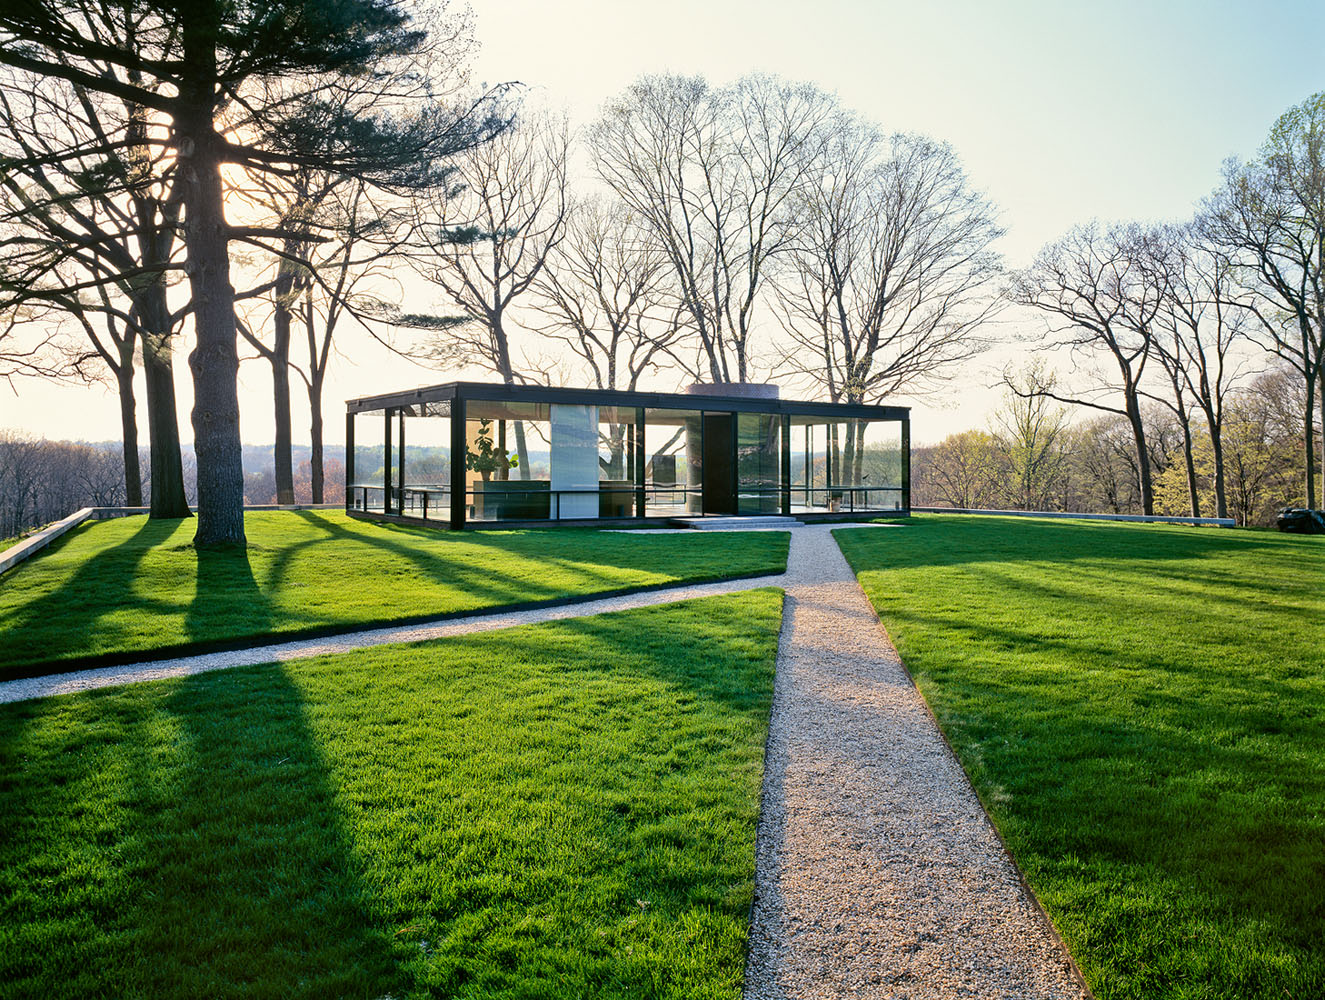 Philip Johnson's Glass HouseNew Canaan, CTPreservation Magazine /National Trust for Historic Preservation